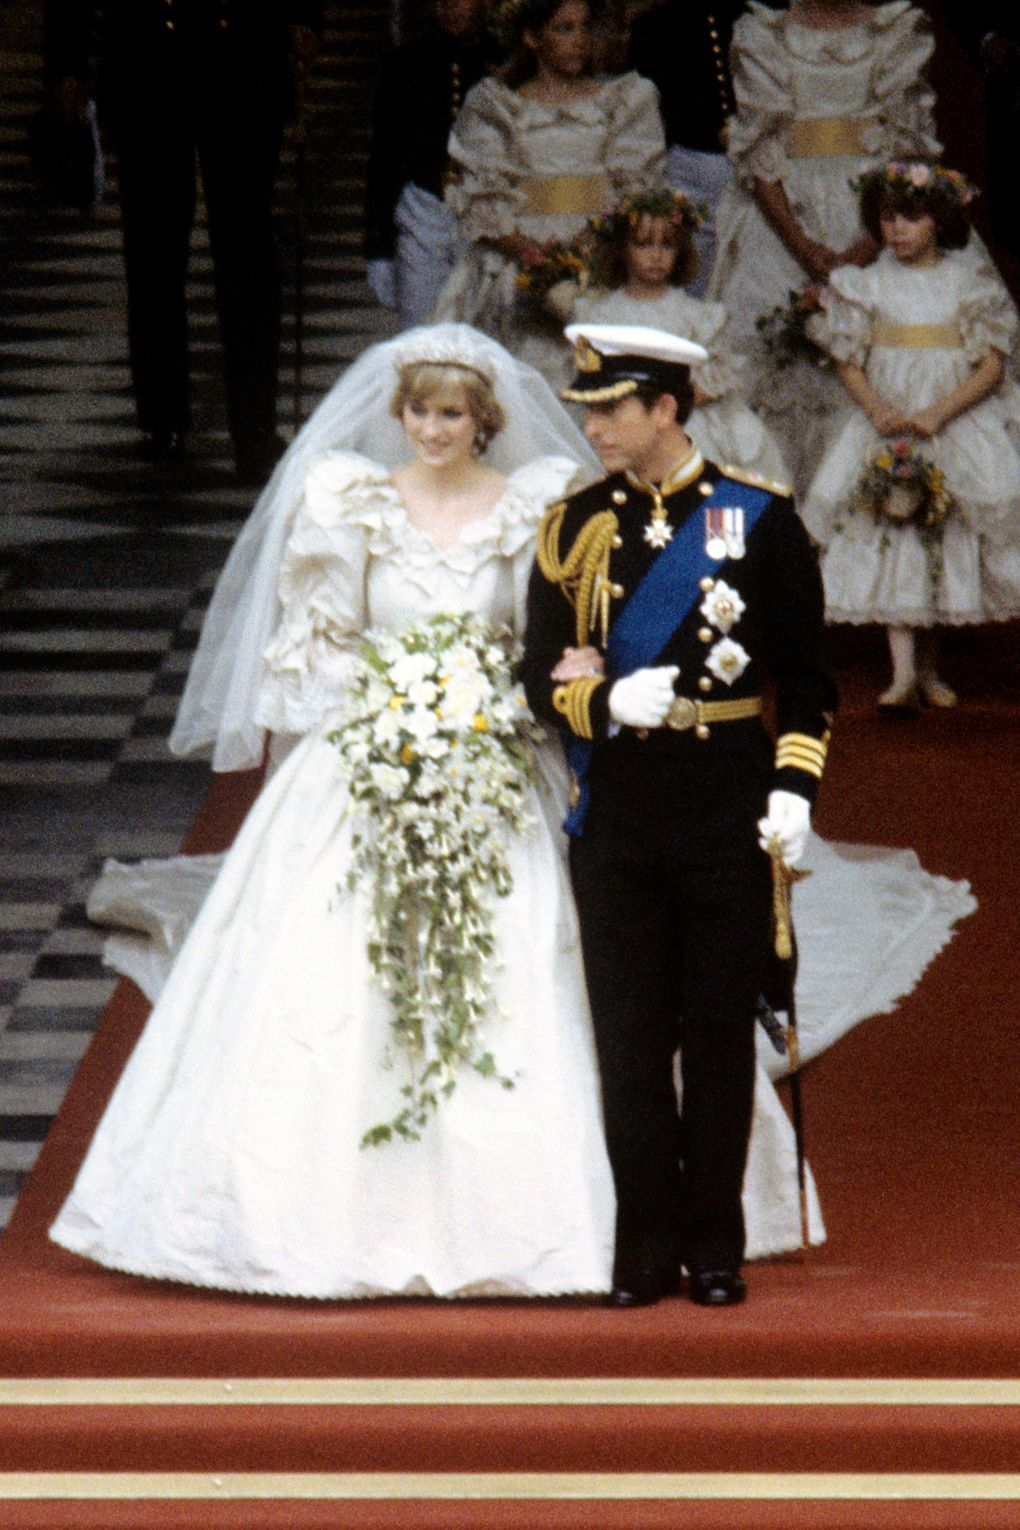 Famous Wedding Dresses | Elizabeth emanuel, Royal weddings and ...